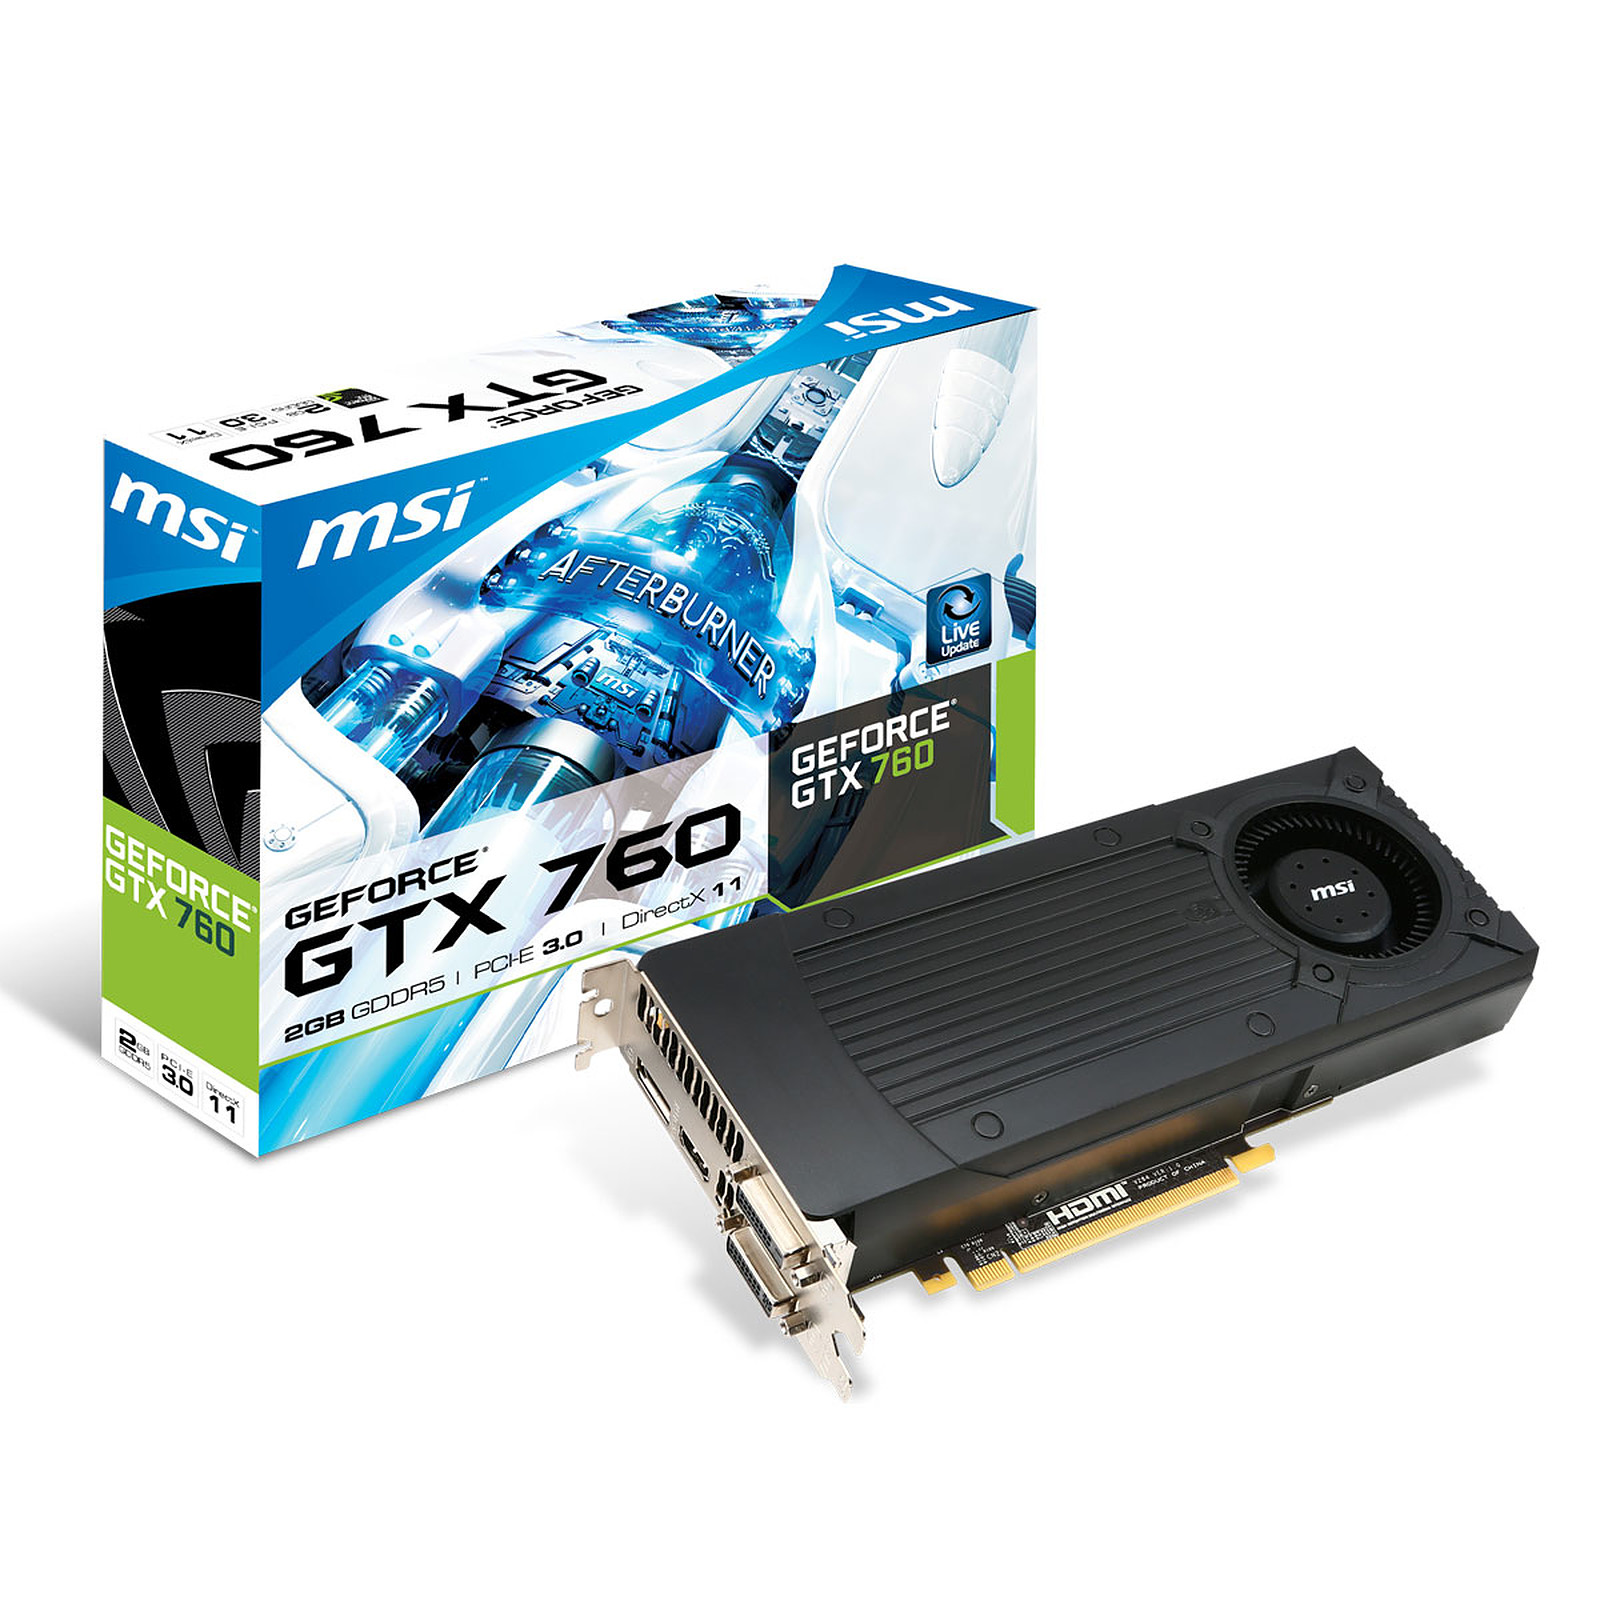 ASUS NVIDIA GeForce GTX 760 2 GB 256bit GTX760 2GB DVI HDMI Display Video Card